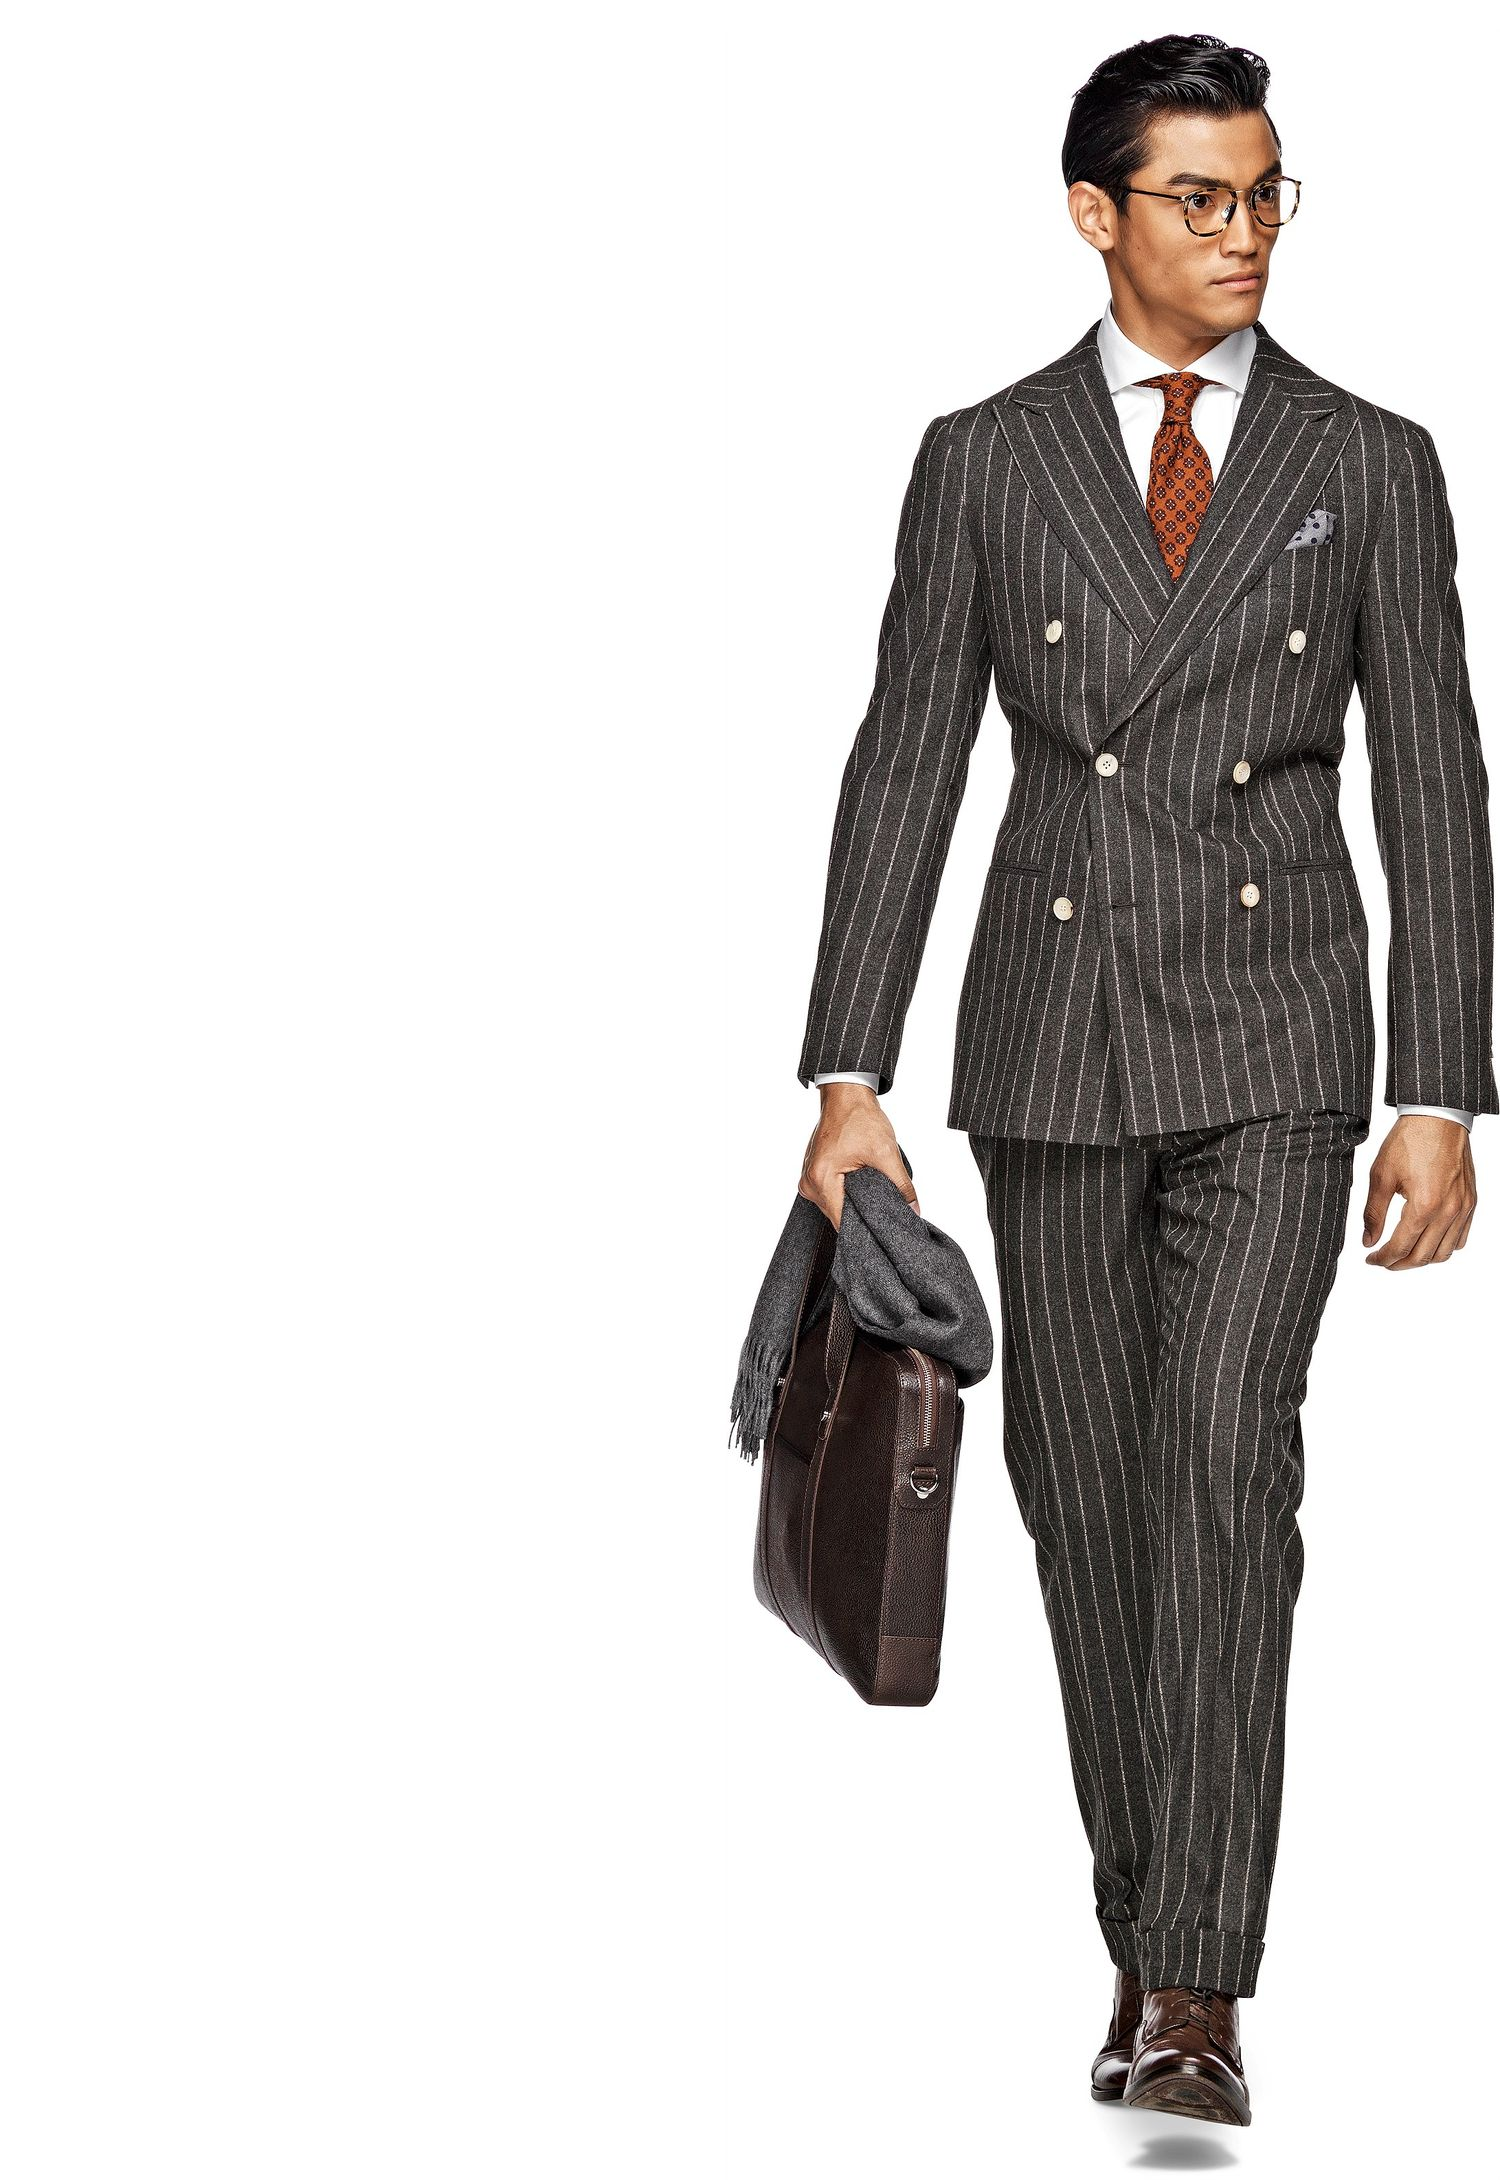 Top Five SuitSupply FW 13/14 Items